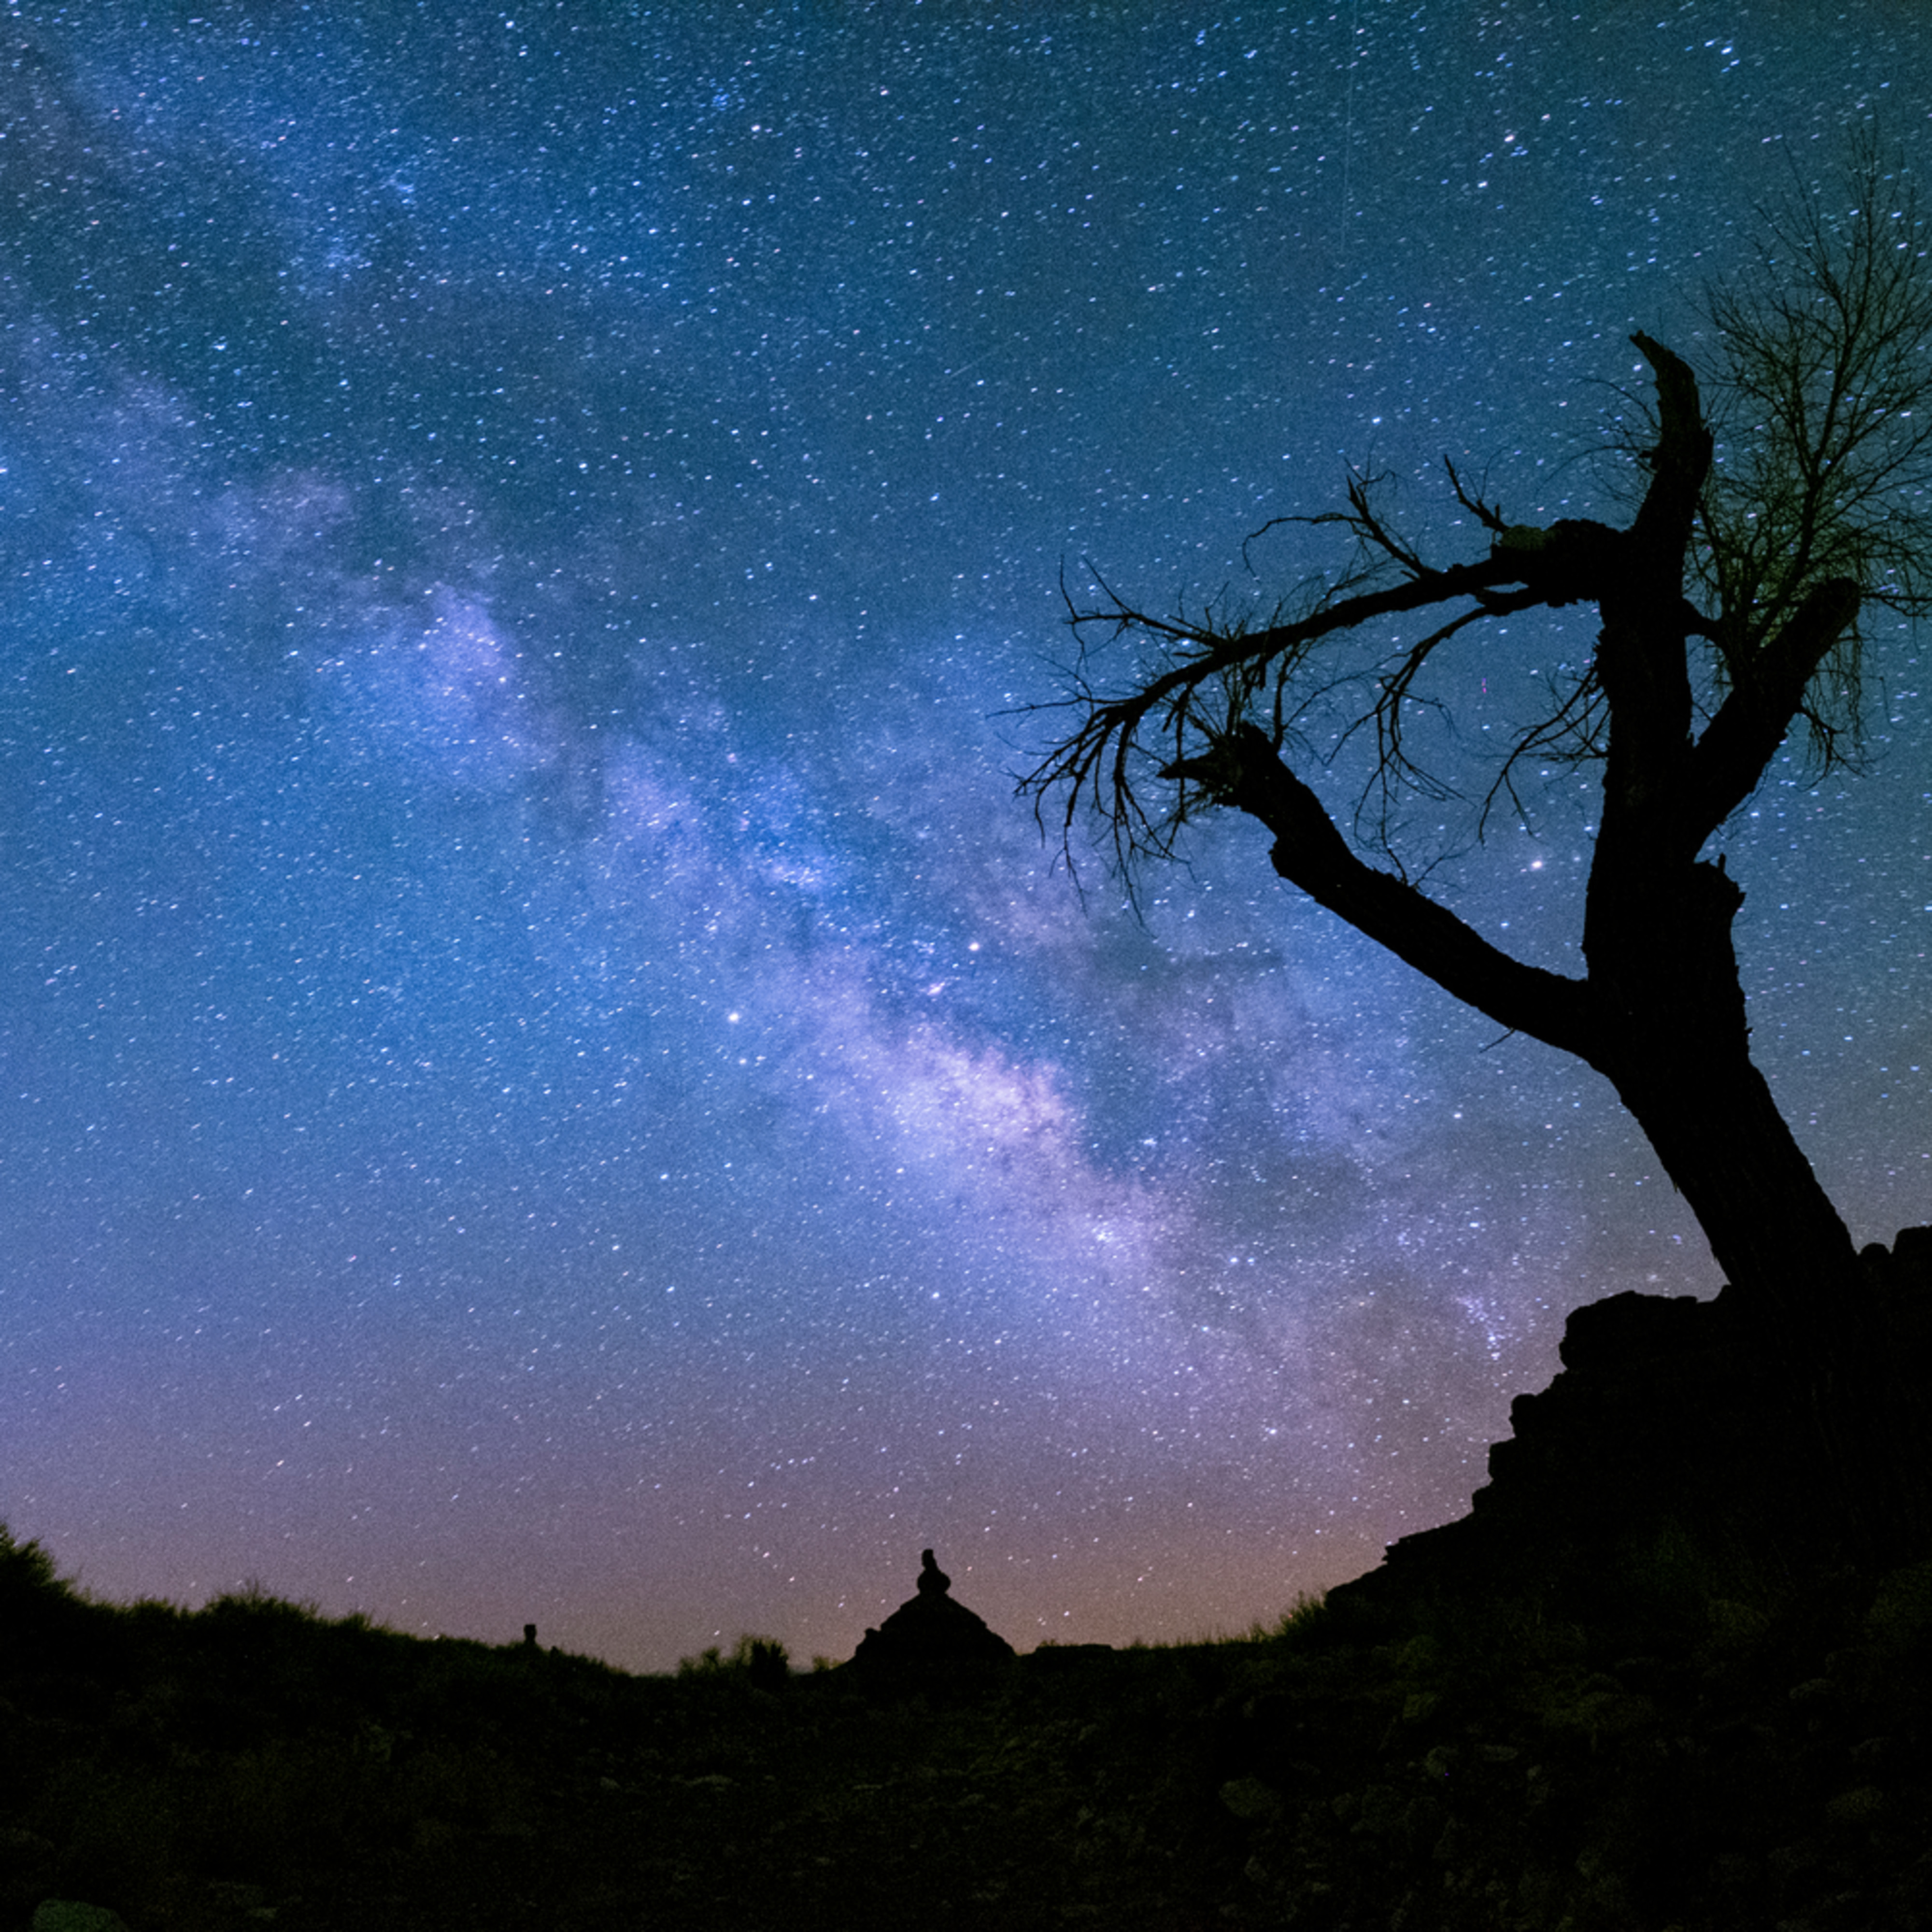 Milky way with tree h9d1ns